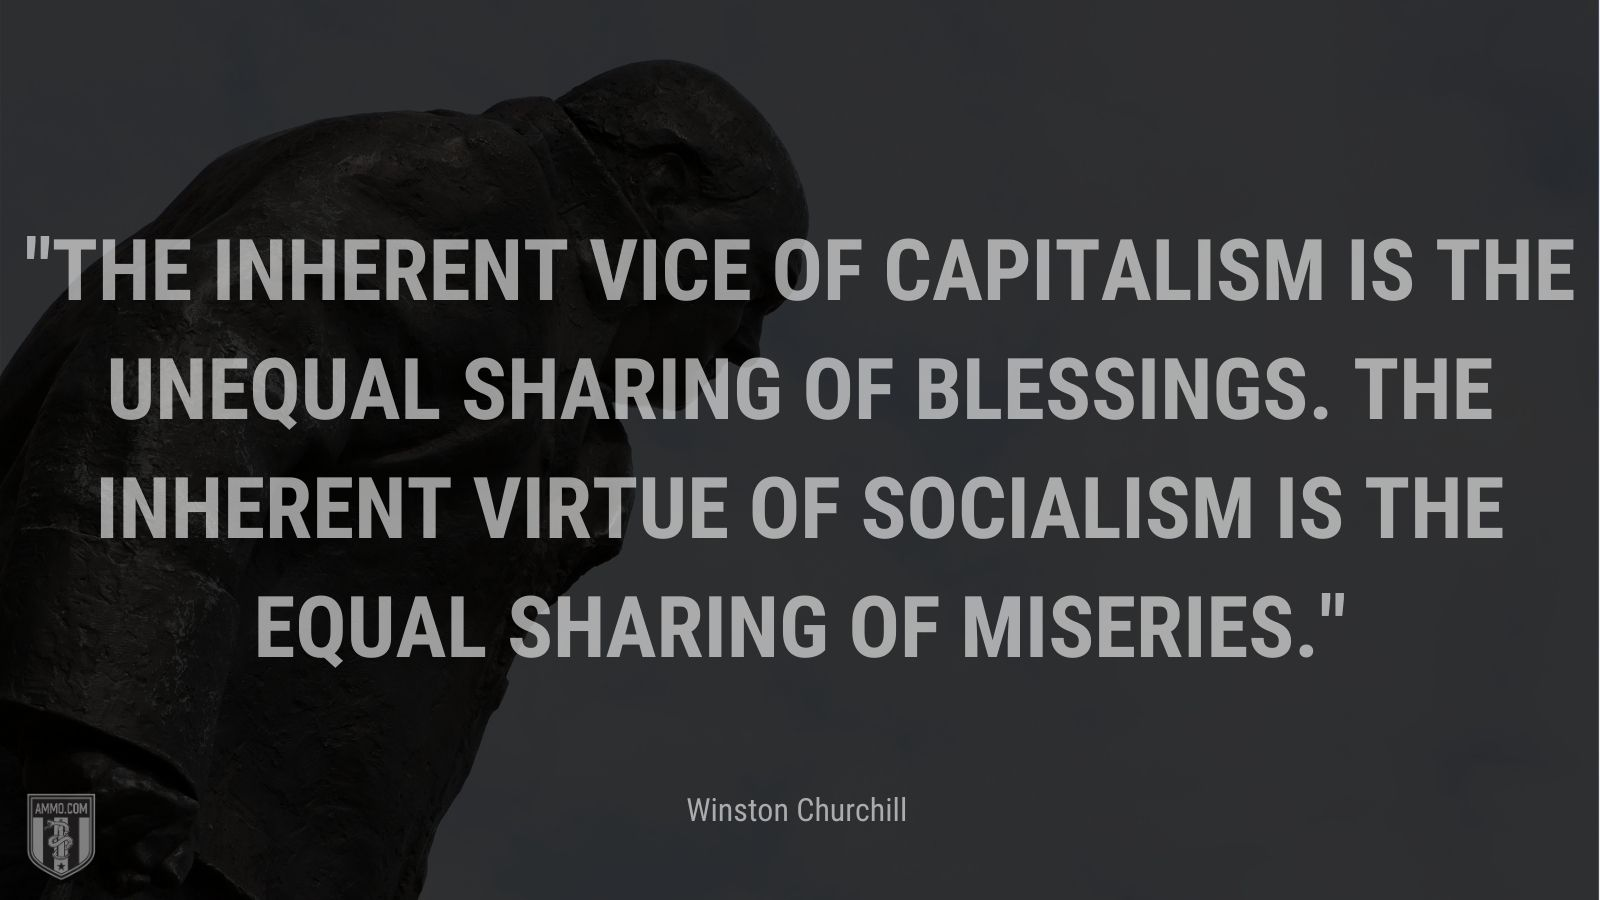 The inherent vice of capitalism is the unequal sharing of blessings. The inherent virtue of Socialism is the equal sharing of miseries.